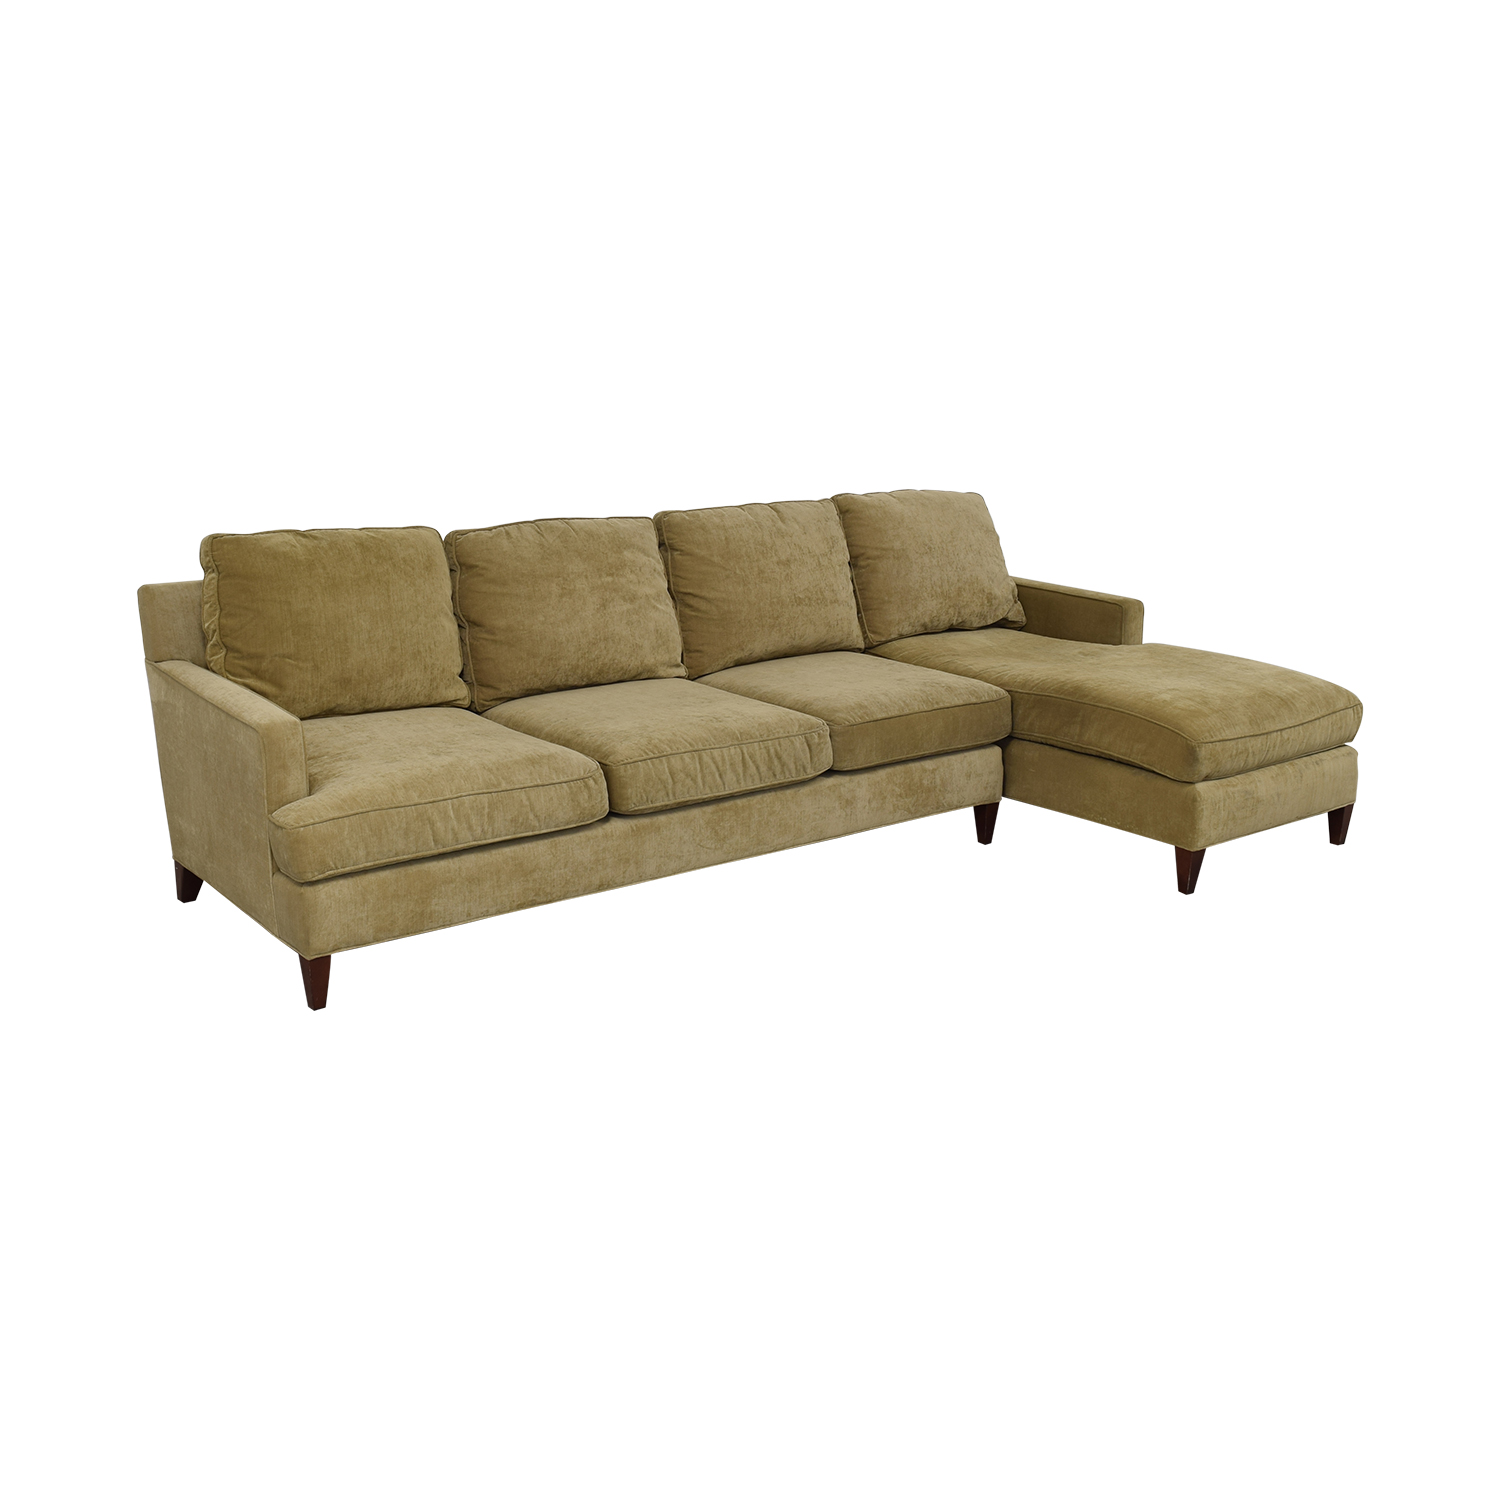 Mitchell Gold + Bob Williams Mitchell Gold + Bob Williams Clifton Sectional Sofa on sale